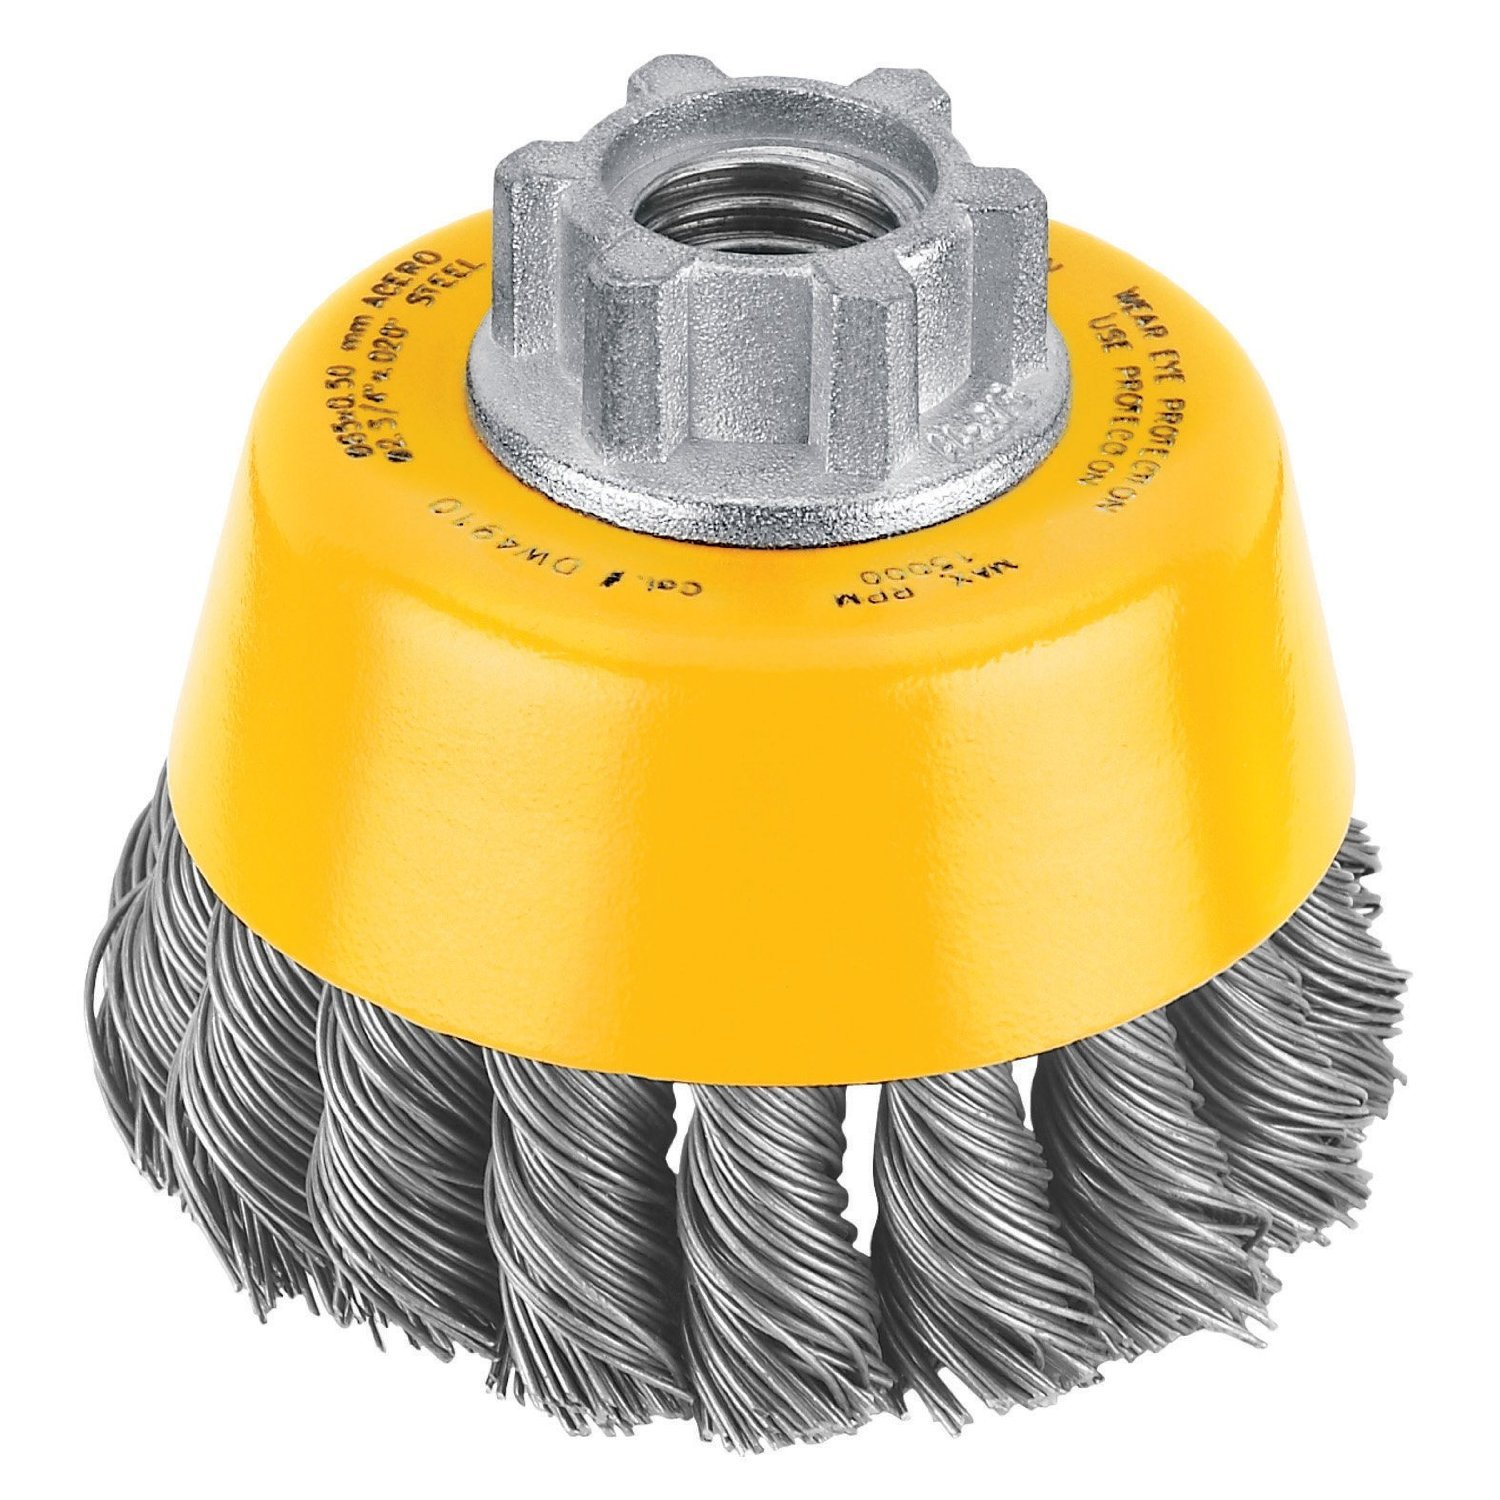 DEWALT DW4910 3'' x 5/8''-11 Knotted Wire Cup Brush- Quantity 24